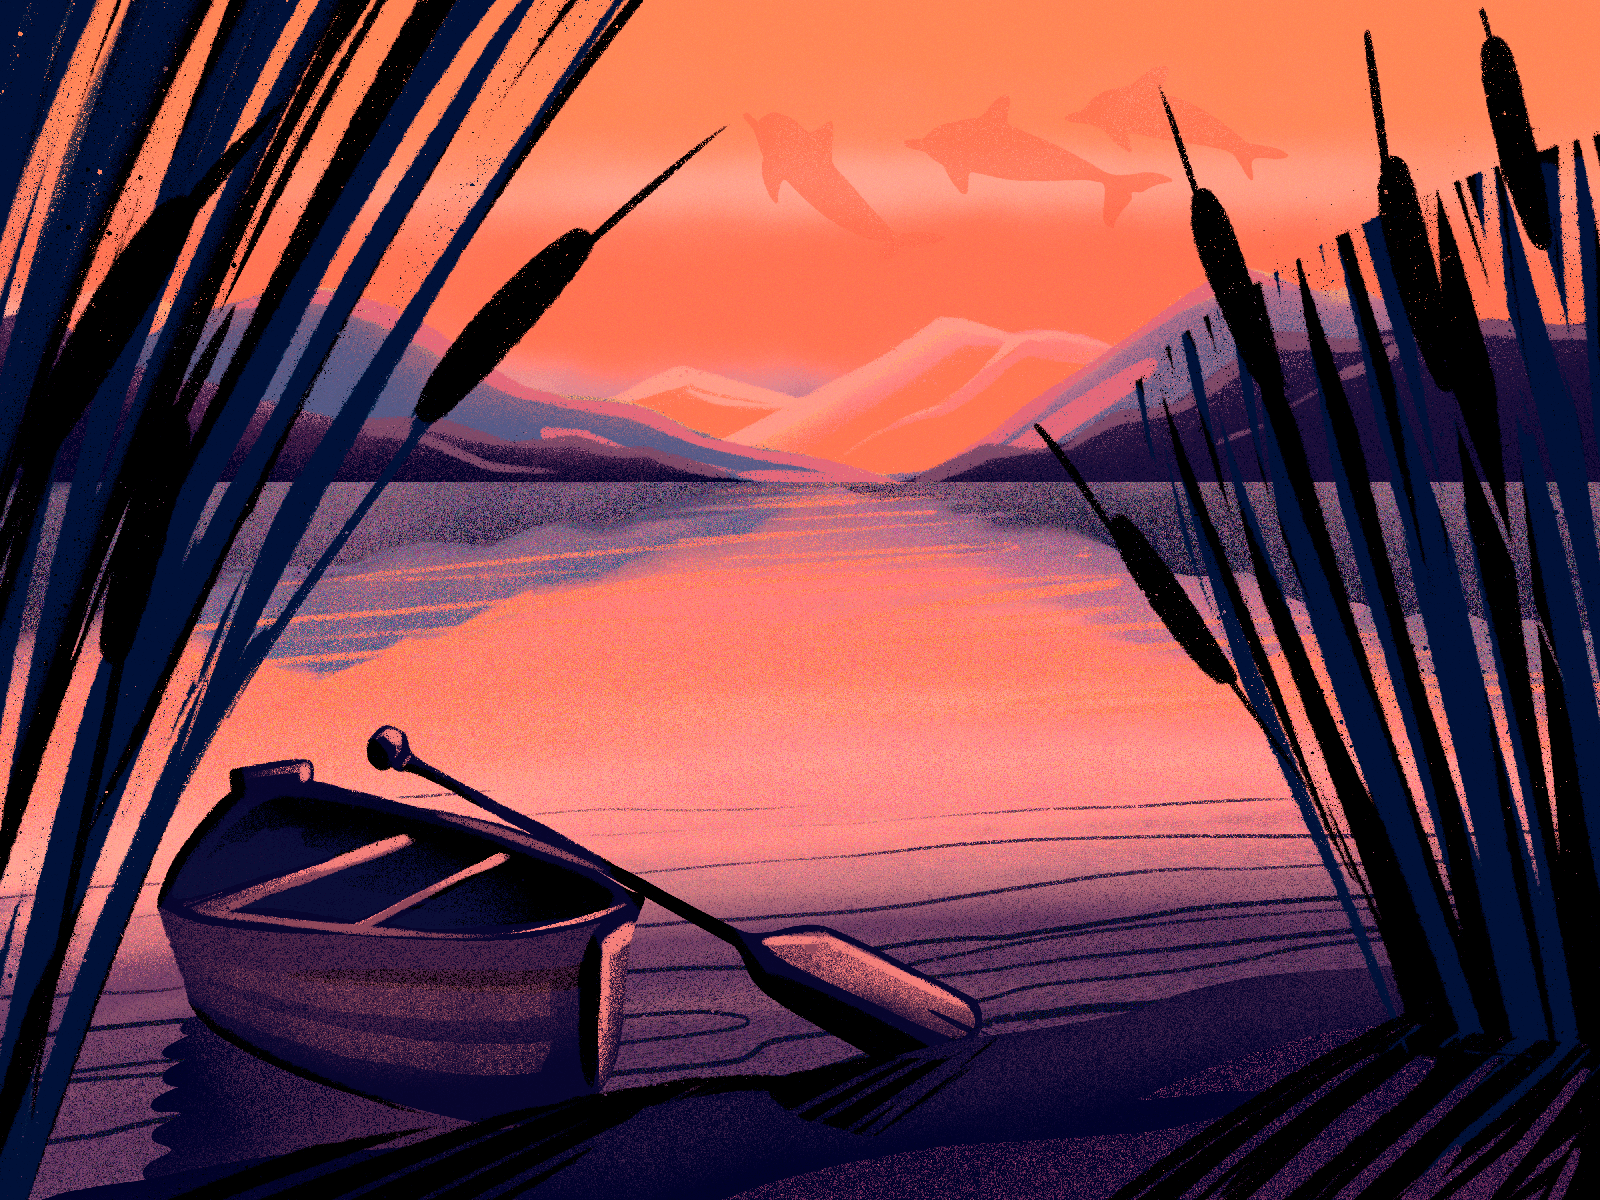 river sunset illustration